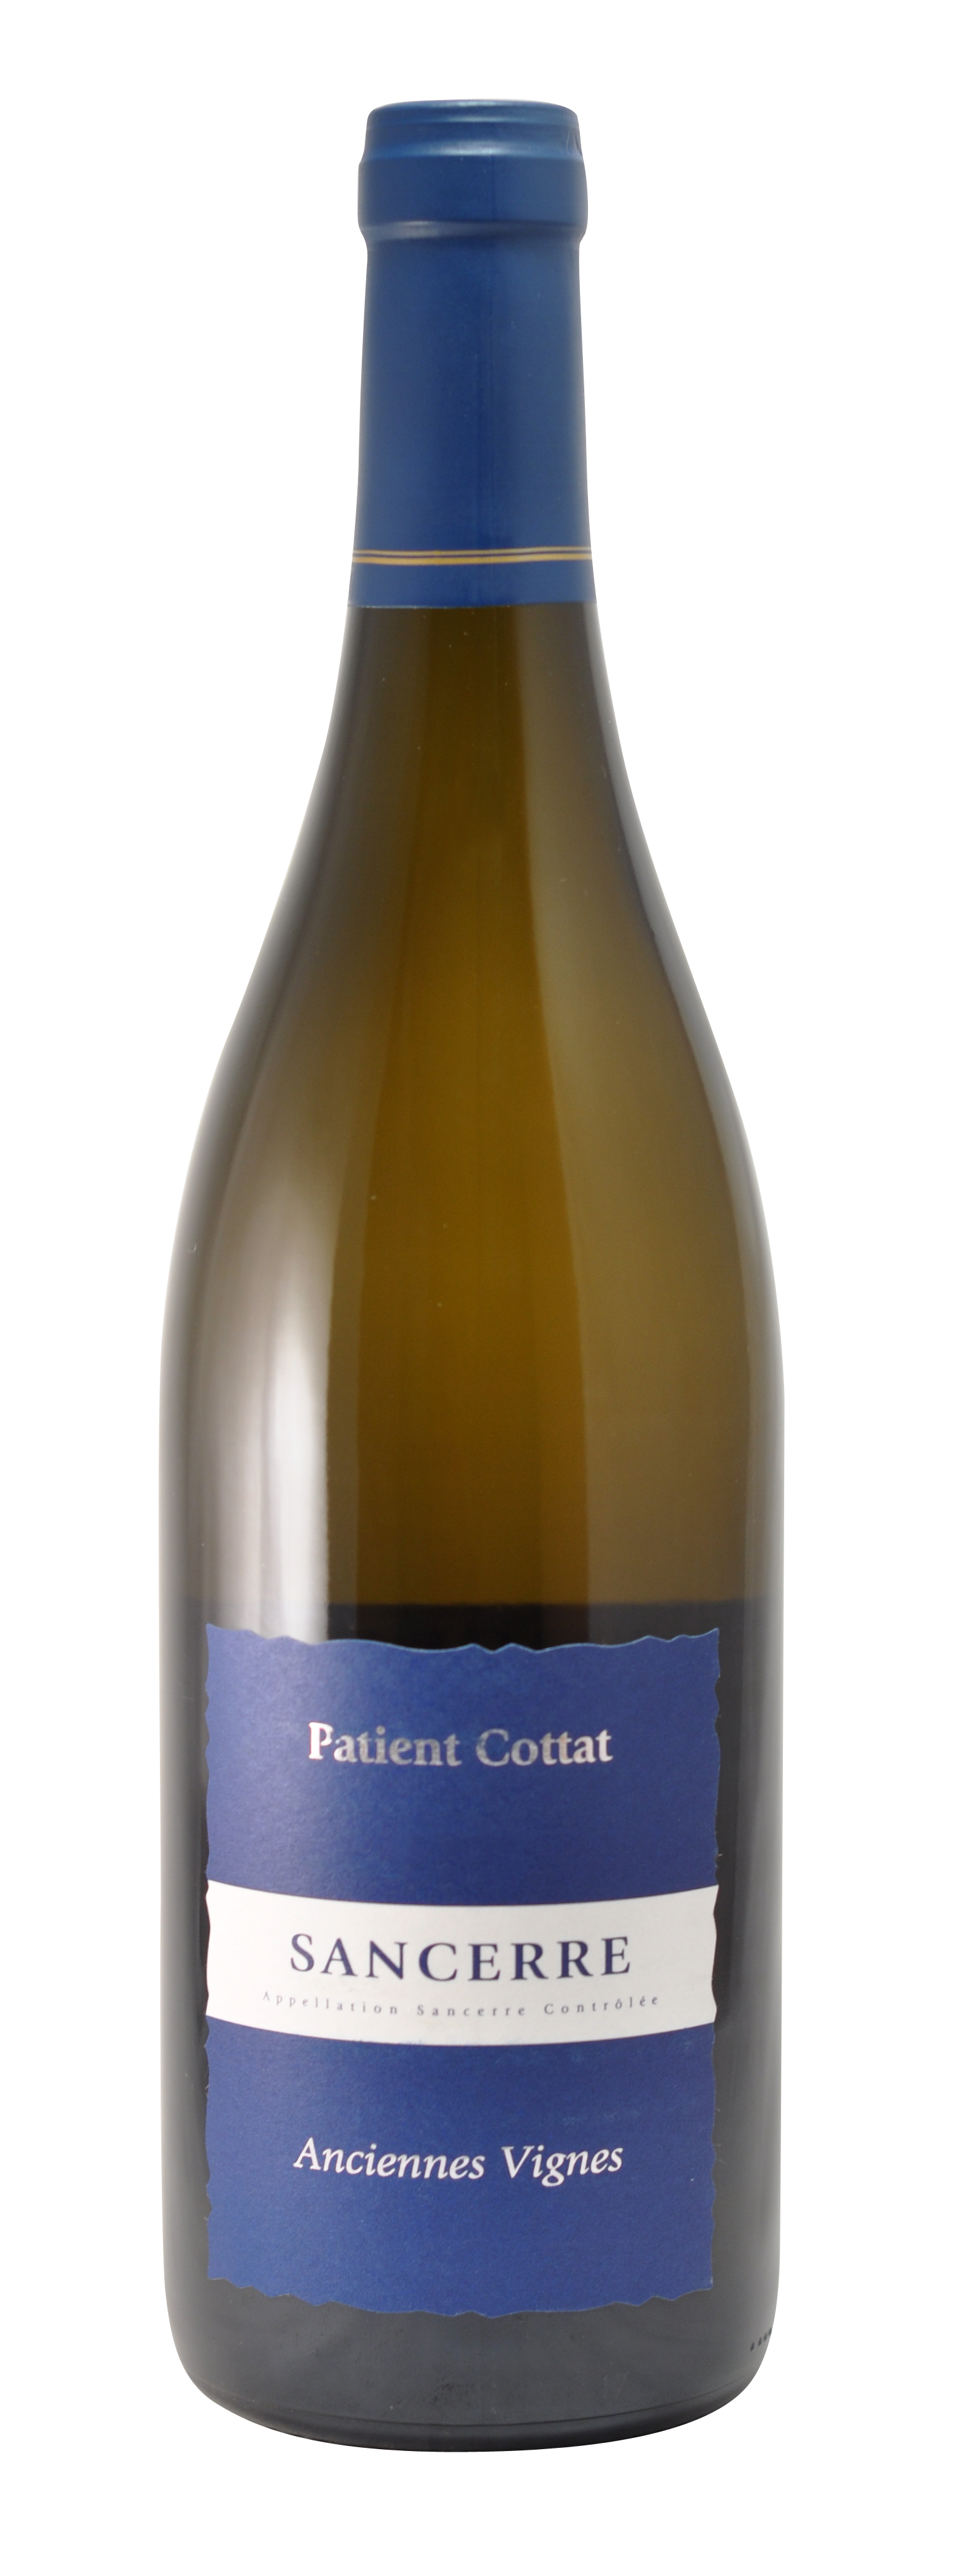 Patient Cottat Sancerre bottle.jpg